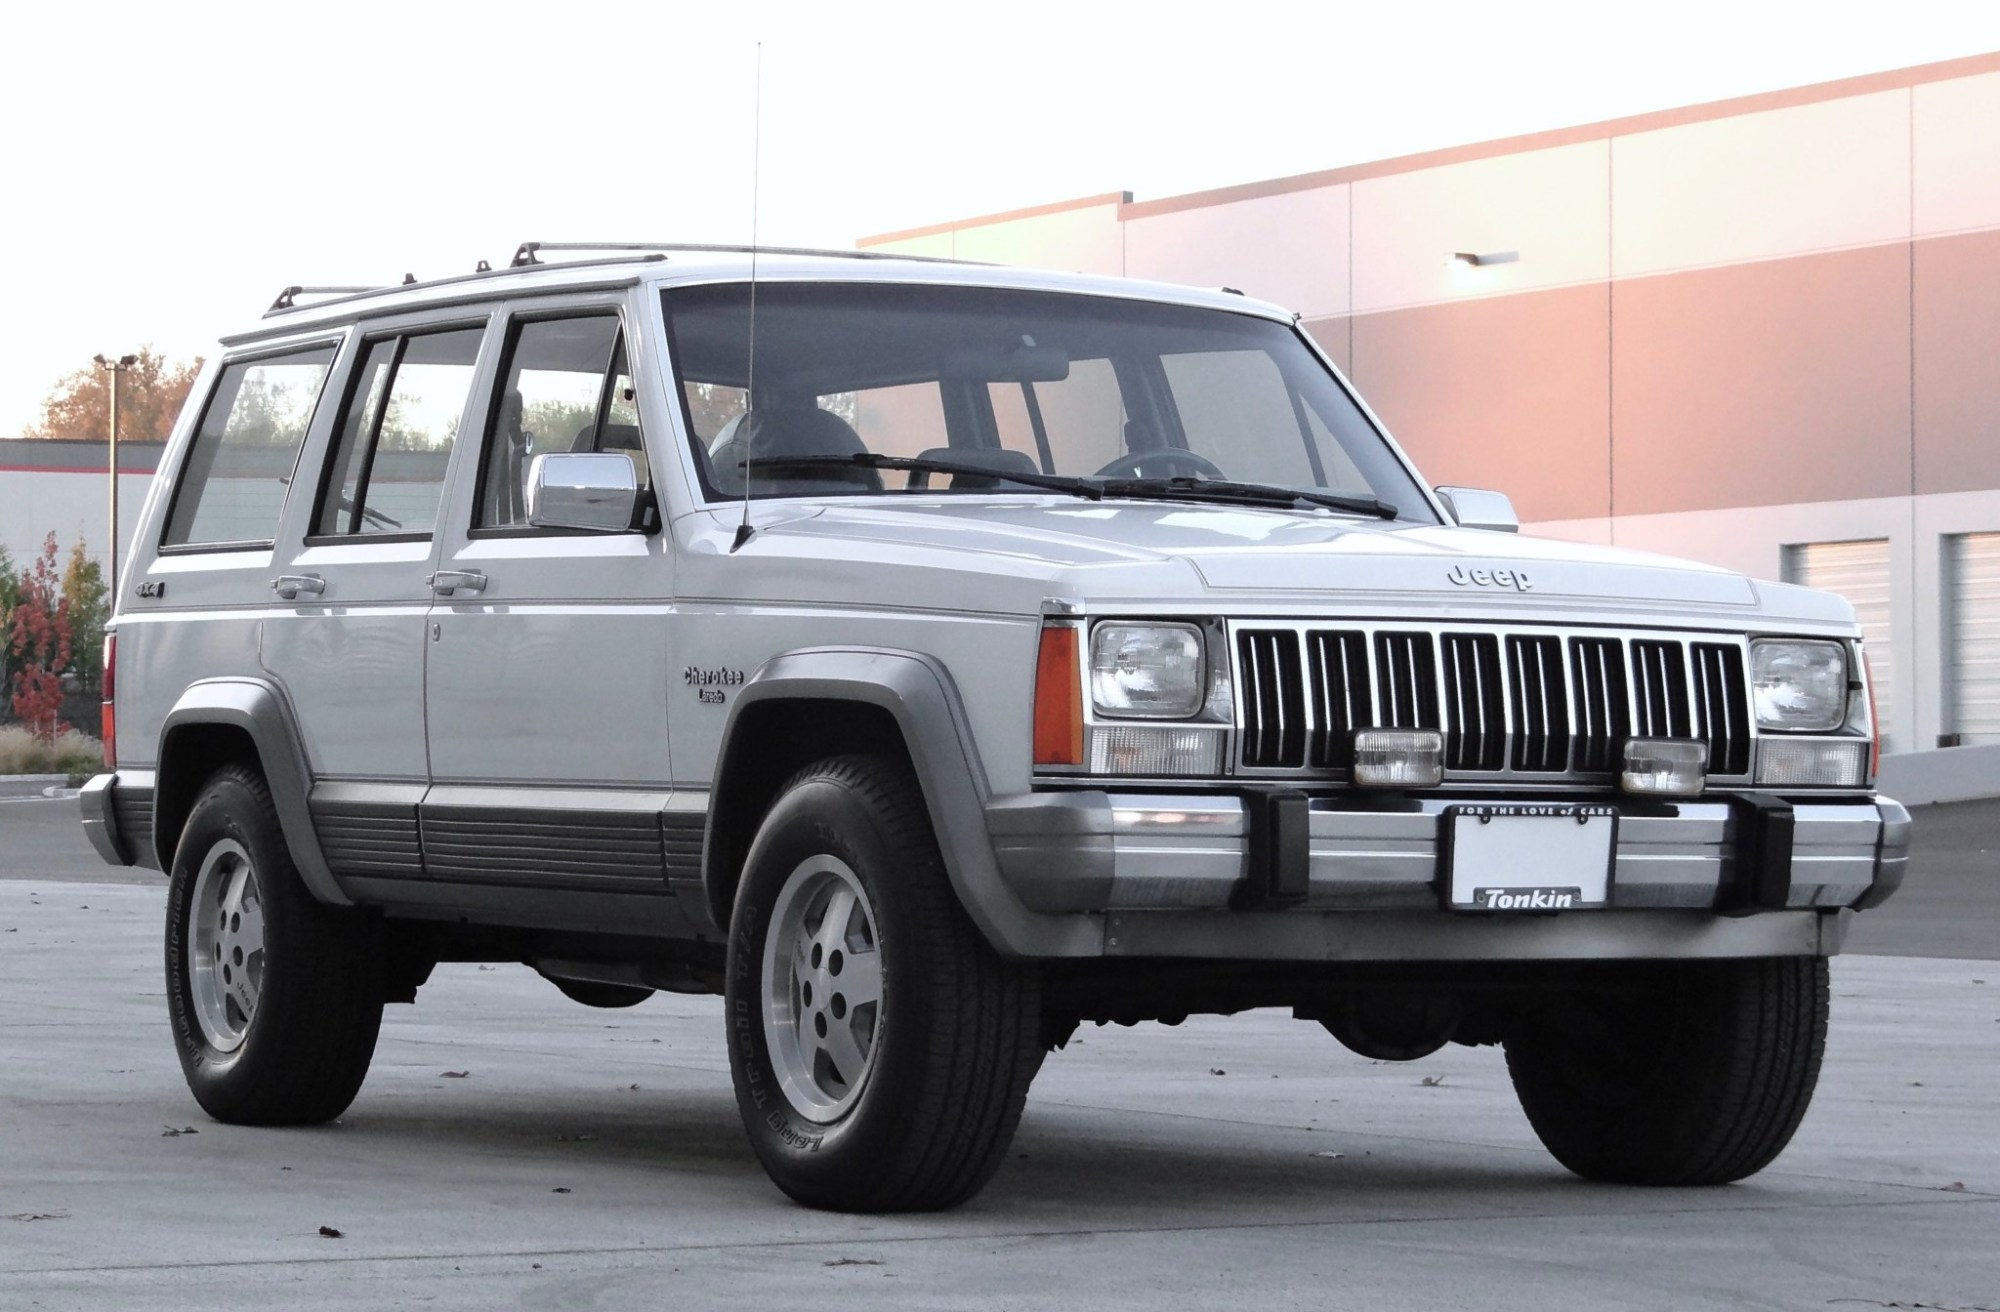 hight resolution of 1989 jeep cherokee for sale on bat auctions sold for 10 001 on january 14 2019 lot 15 513 bring a trailer